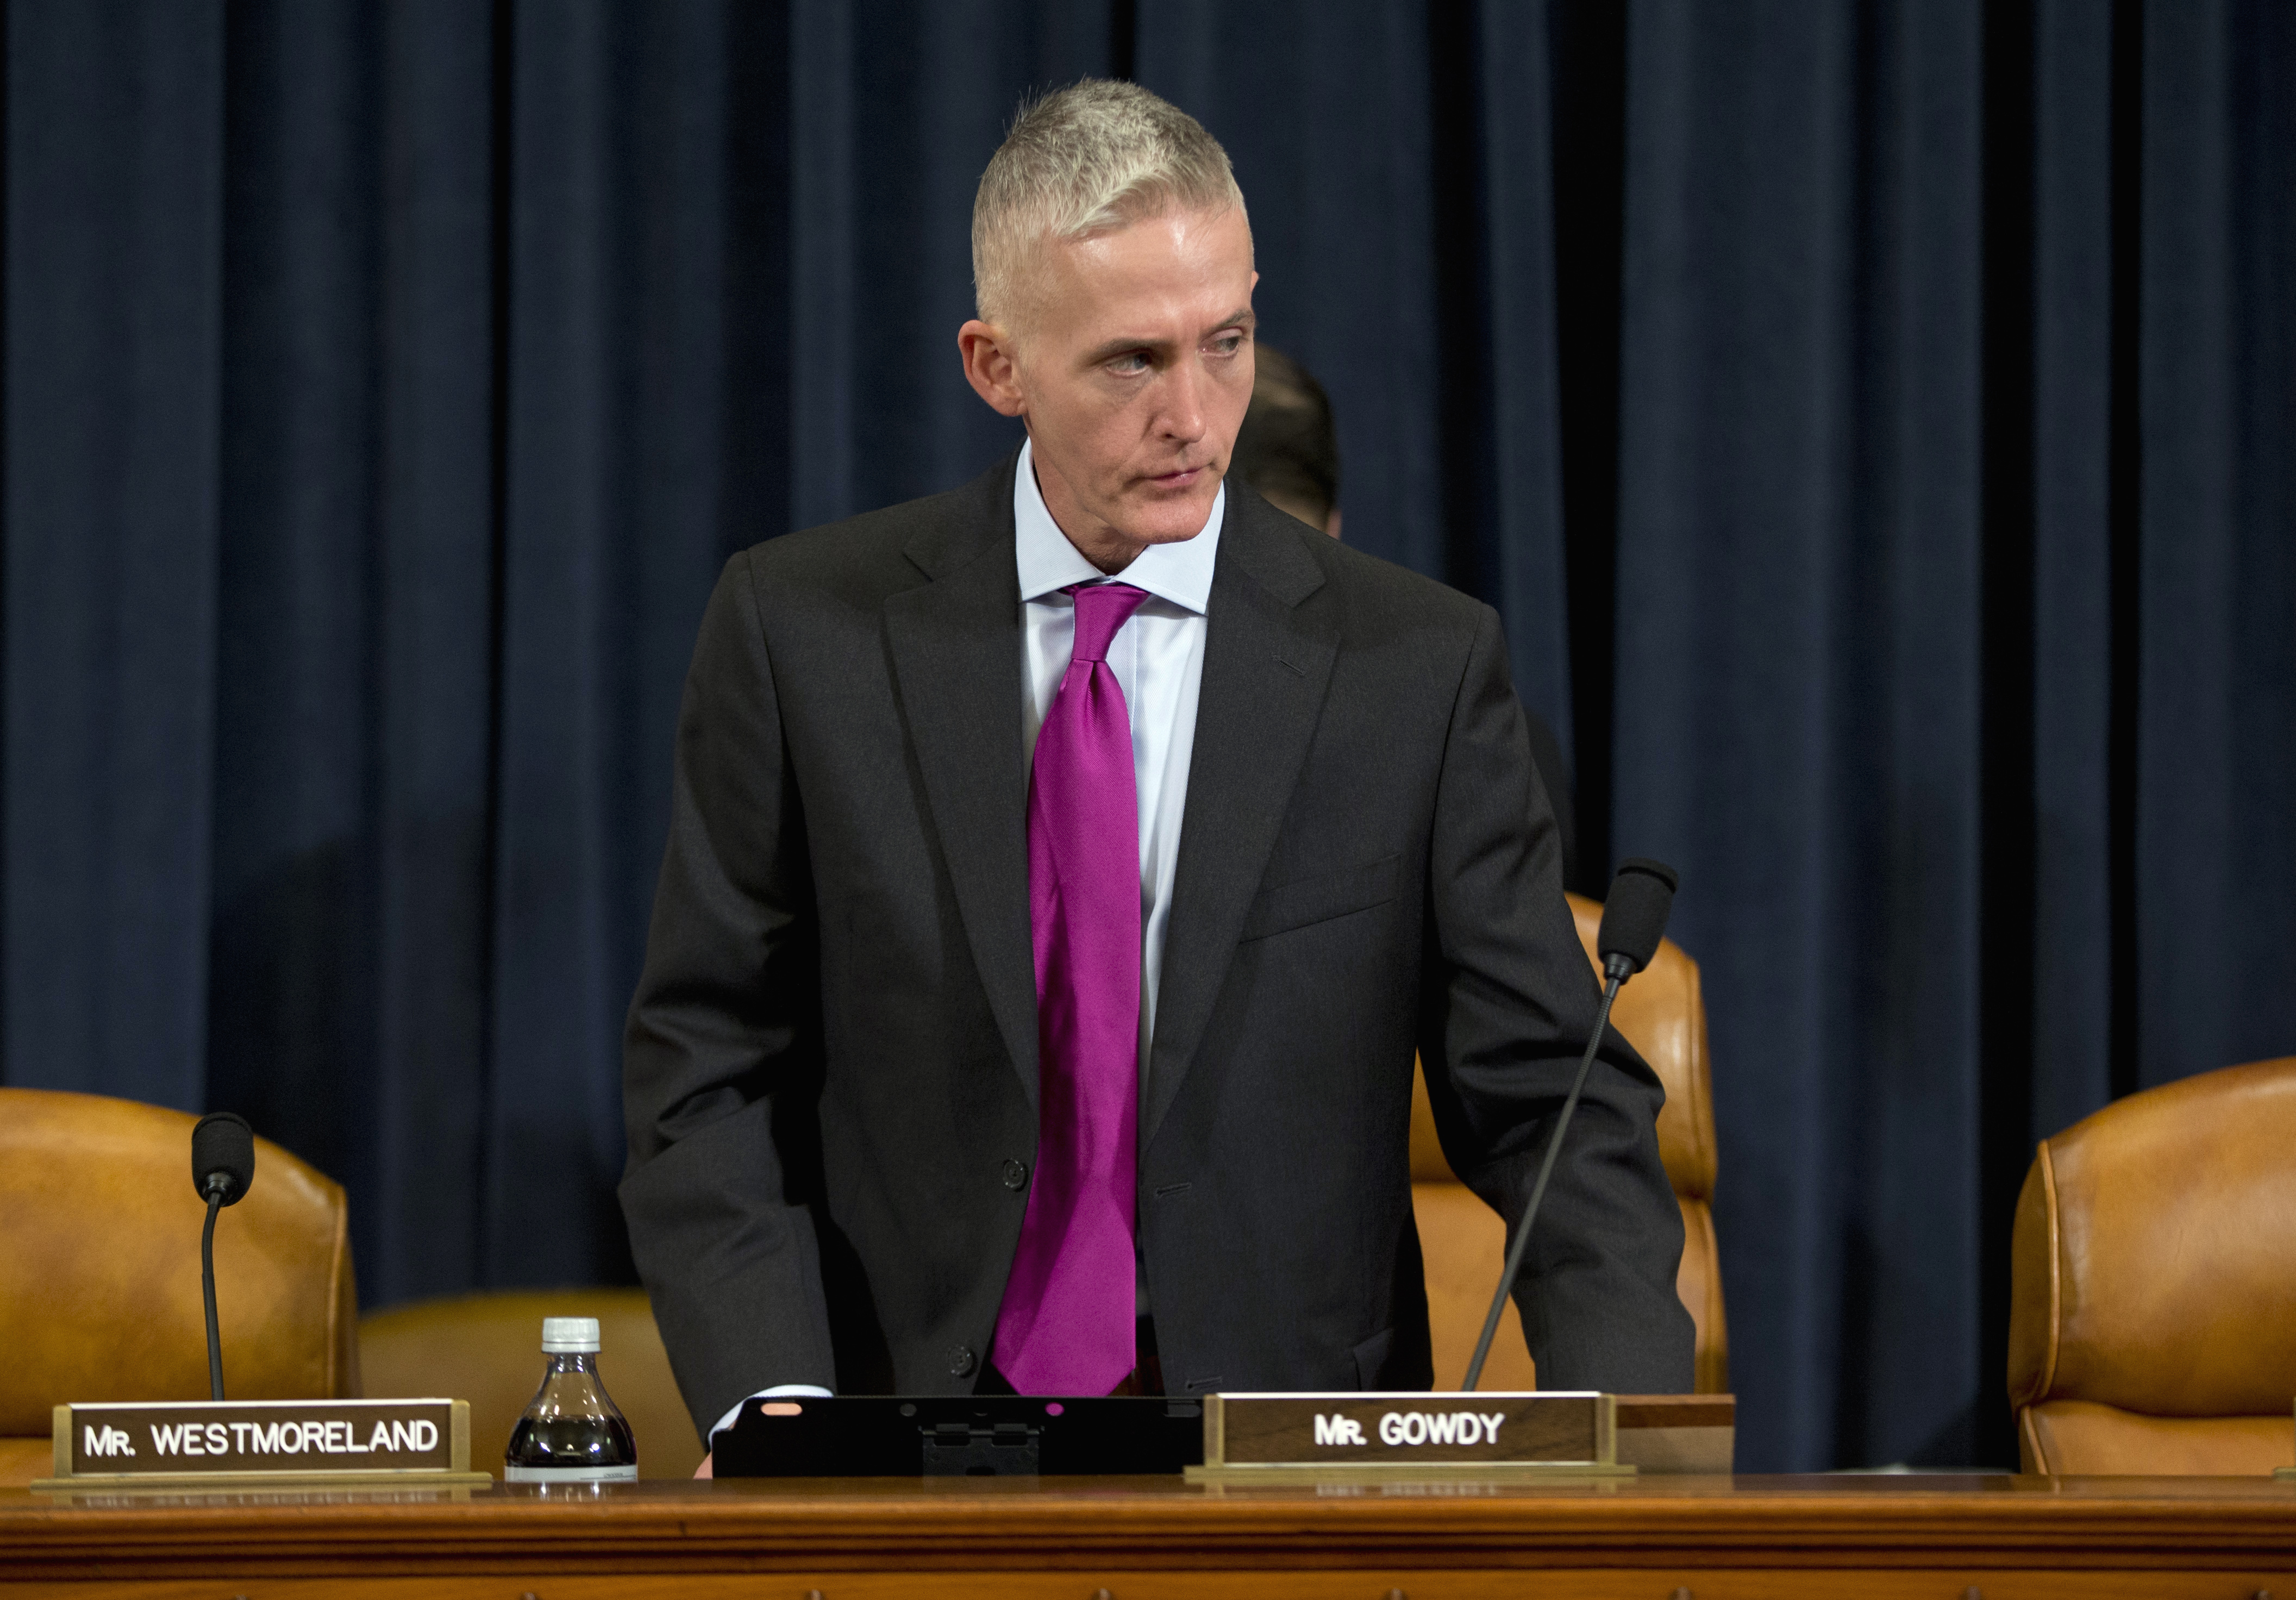 House Benghazi Committee Chairman Representative Trey Gowdy is seen prior to the start of the committee's hearing on Benghazi, on Capitol Hill in Washington, Oct. 22, 2015.